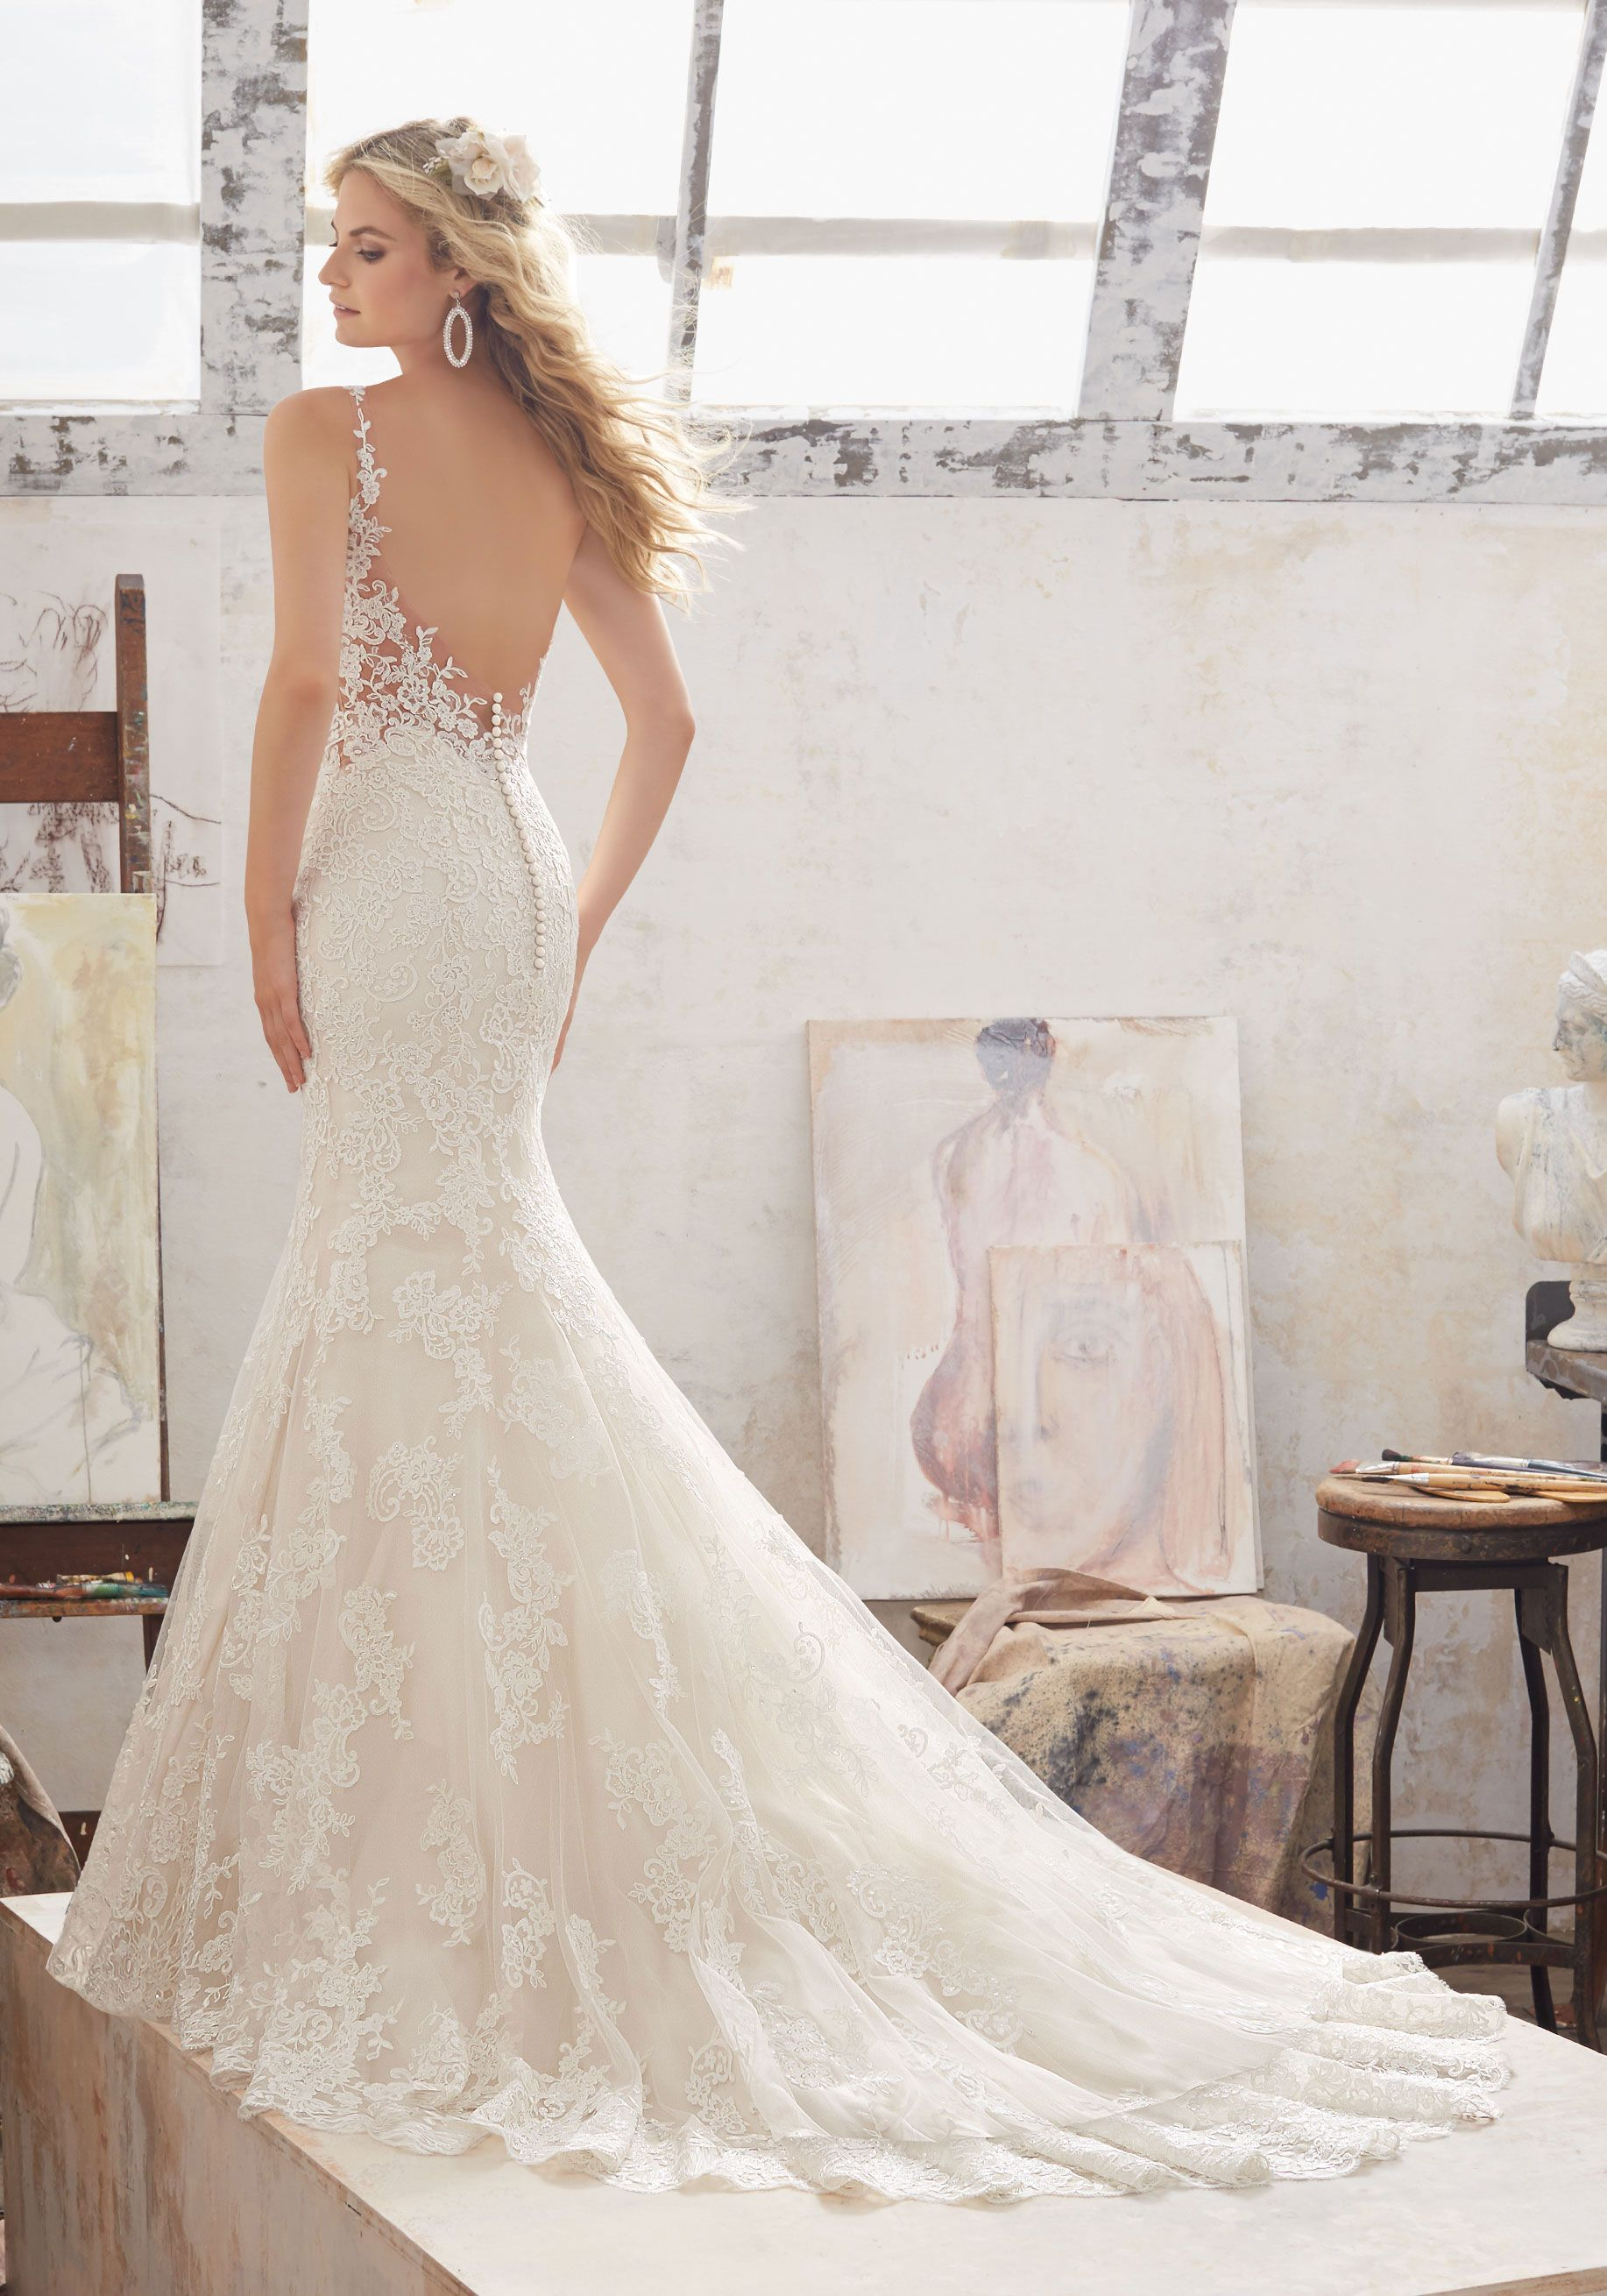 Marcelline Wedding Dress Morilee Fit And Flare Wedding Dress Wedding Dresses Mori Lee Wedding Dress [ 2620 x 1834 Pixel ]